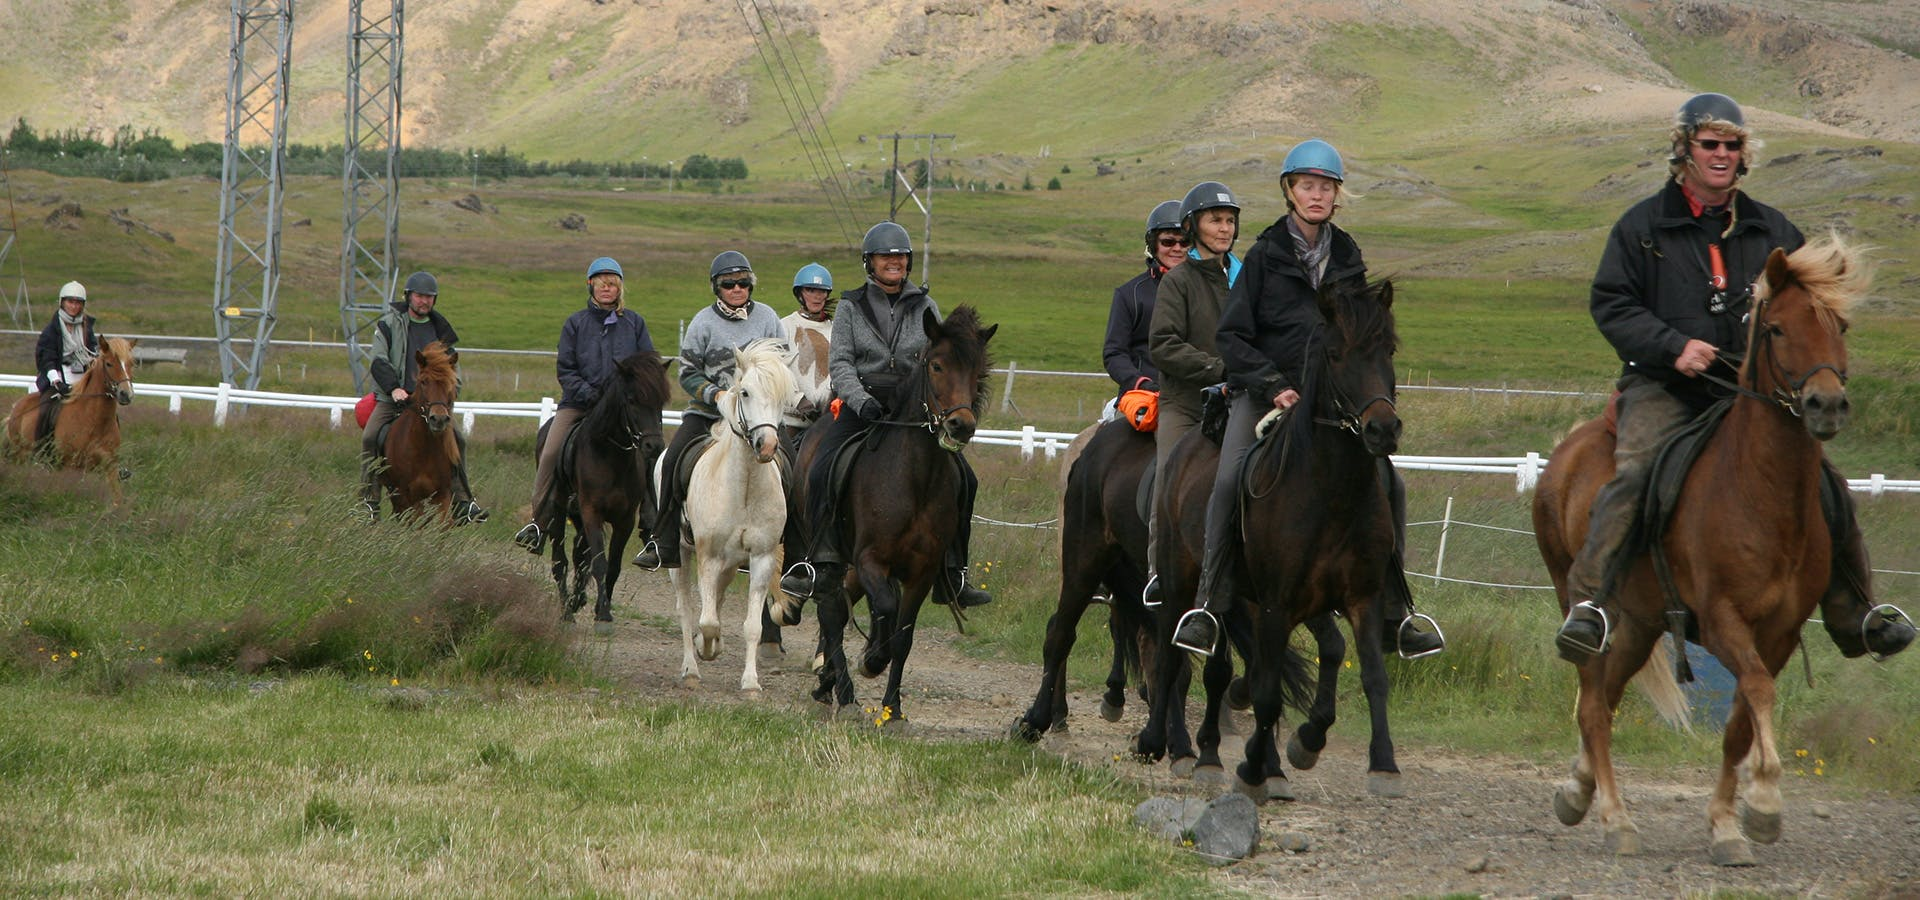 Golden Circle & Horse Riding Day Tour | Classic Icelandic